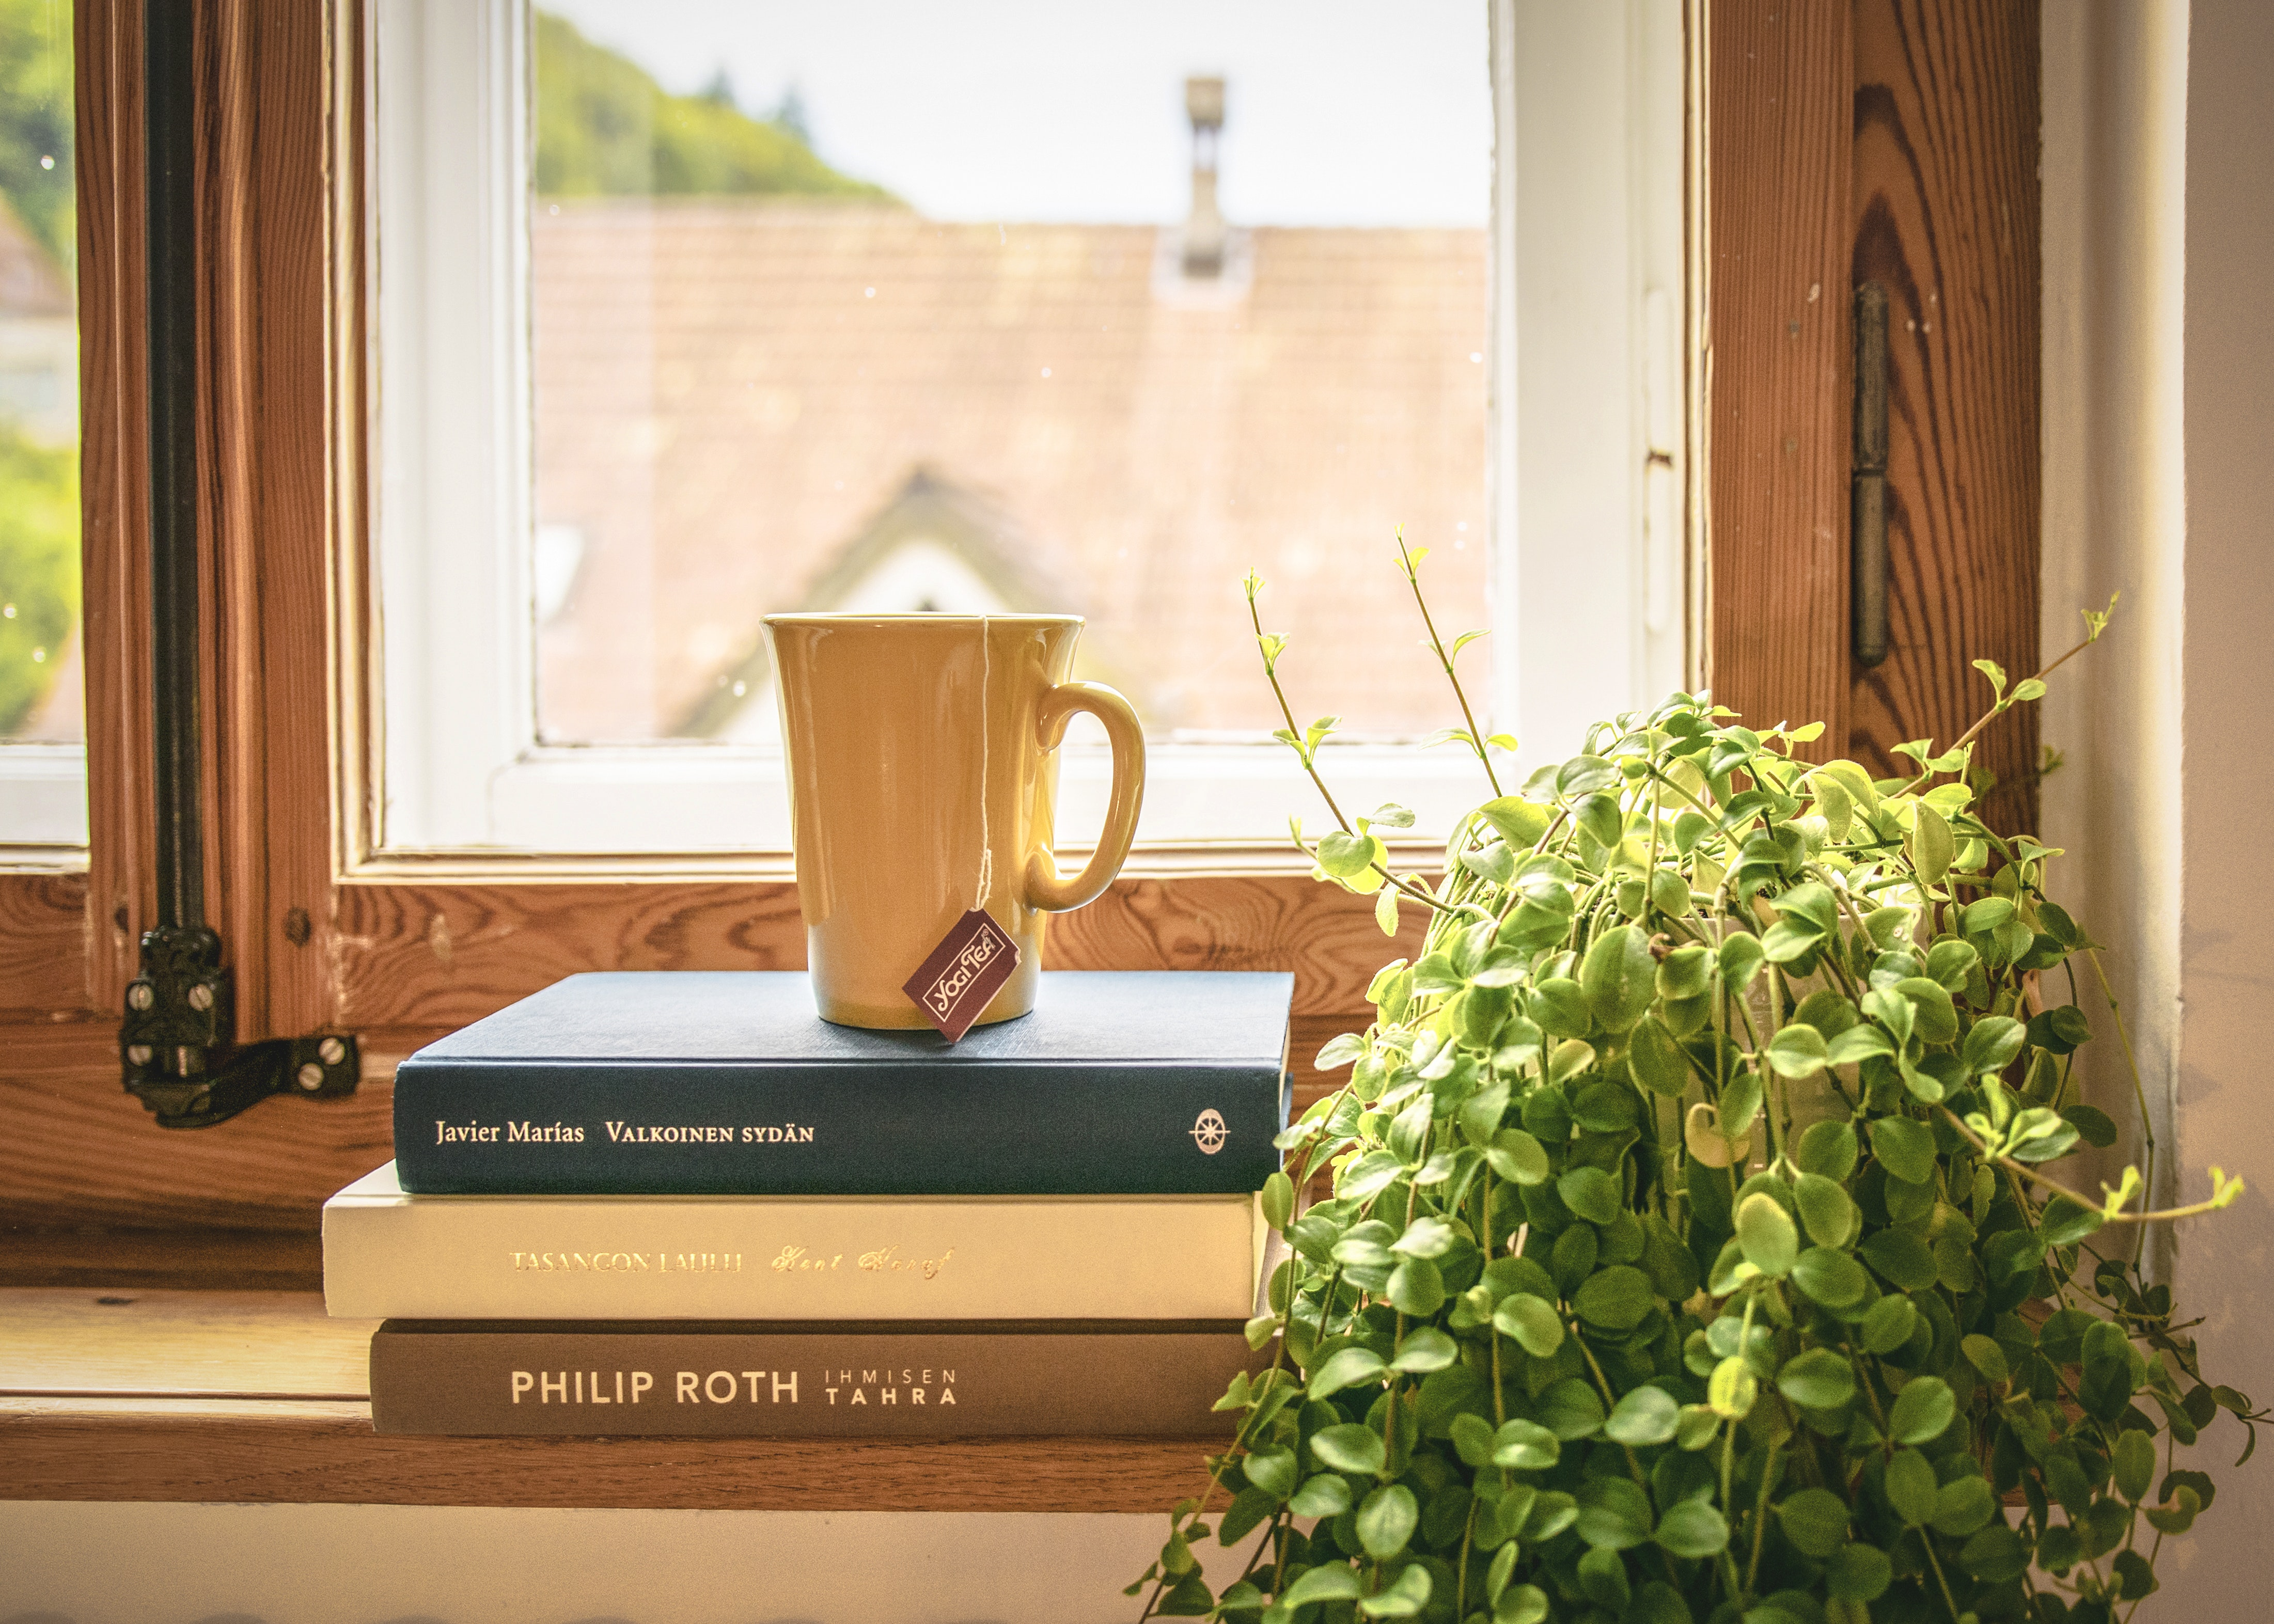 Stock of books and a cup of tea on a window sill at home